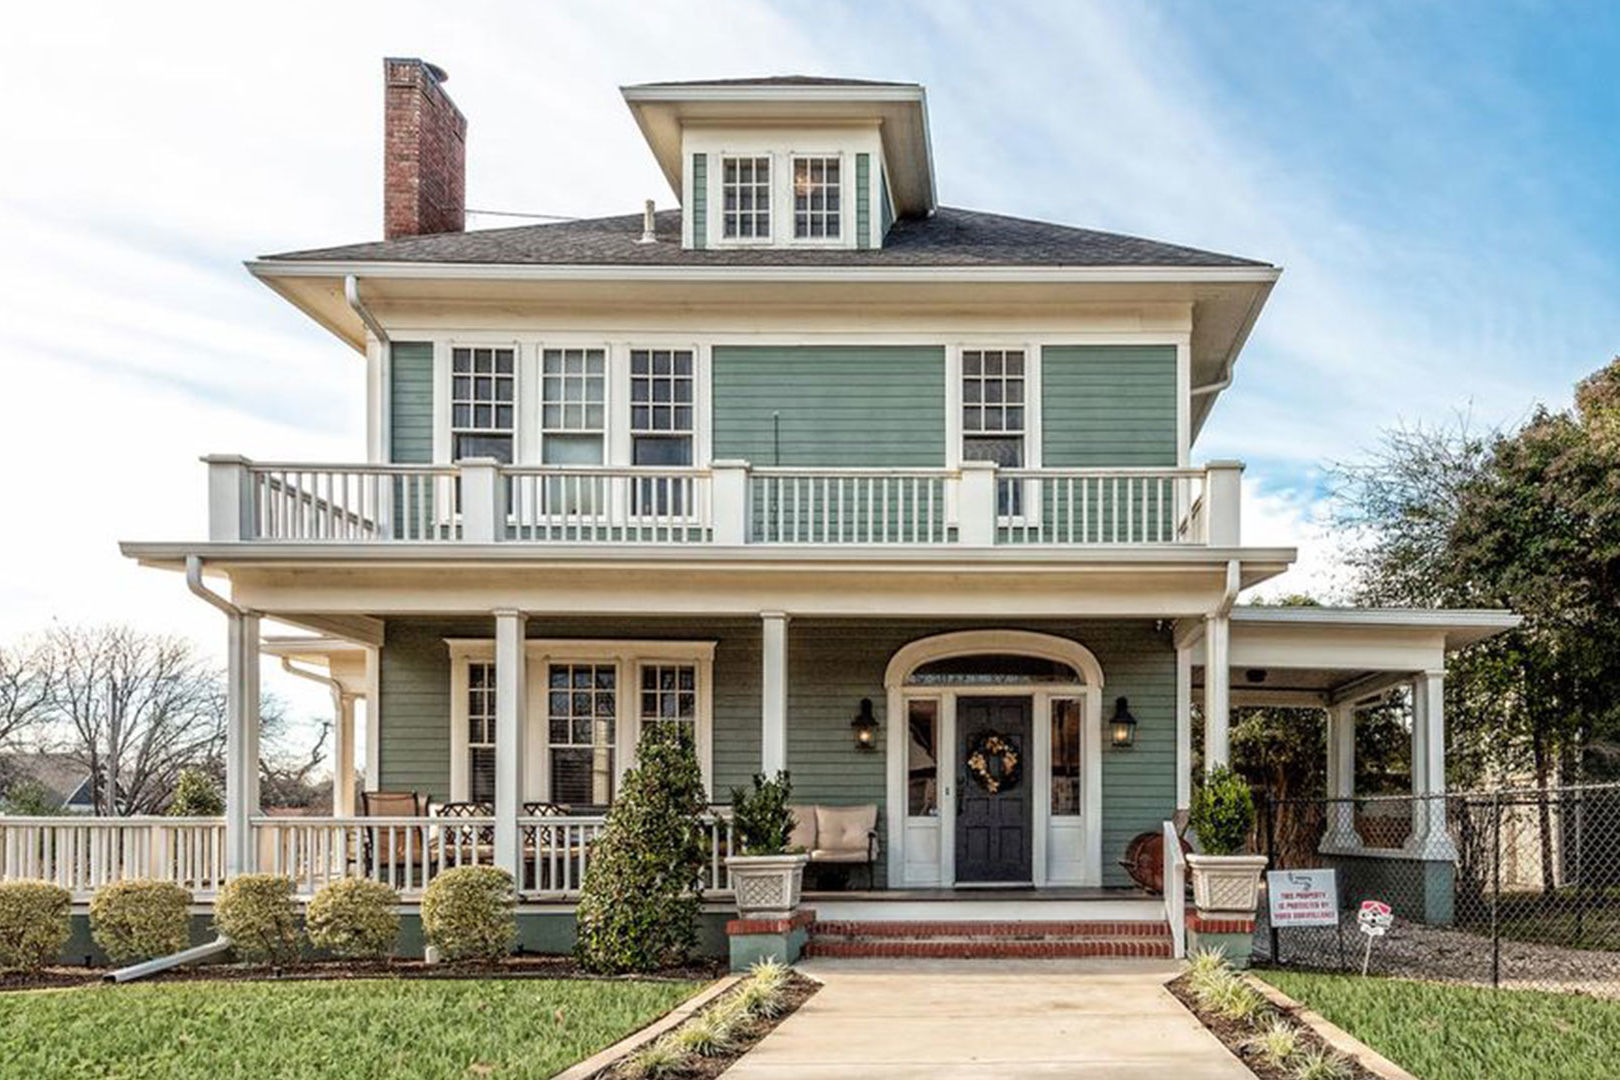 One of <i>Fixer Upper</i>'s Most Memorable (and Massive!) Homes Is Available to Rent